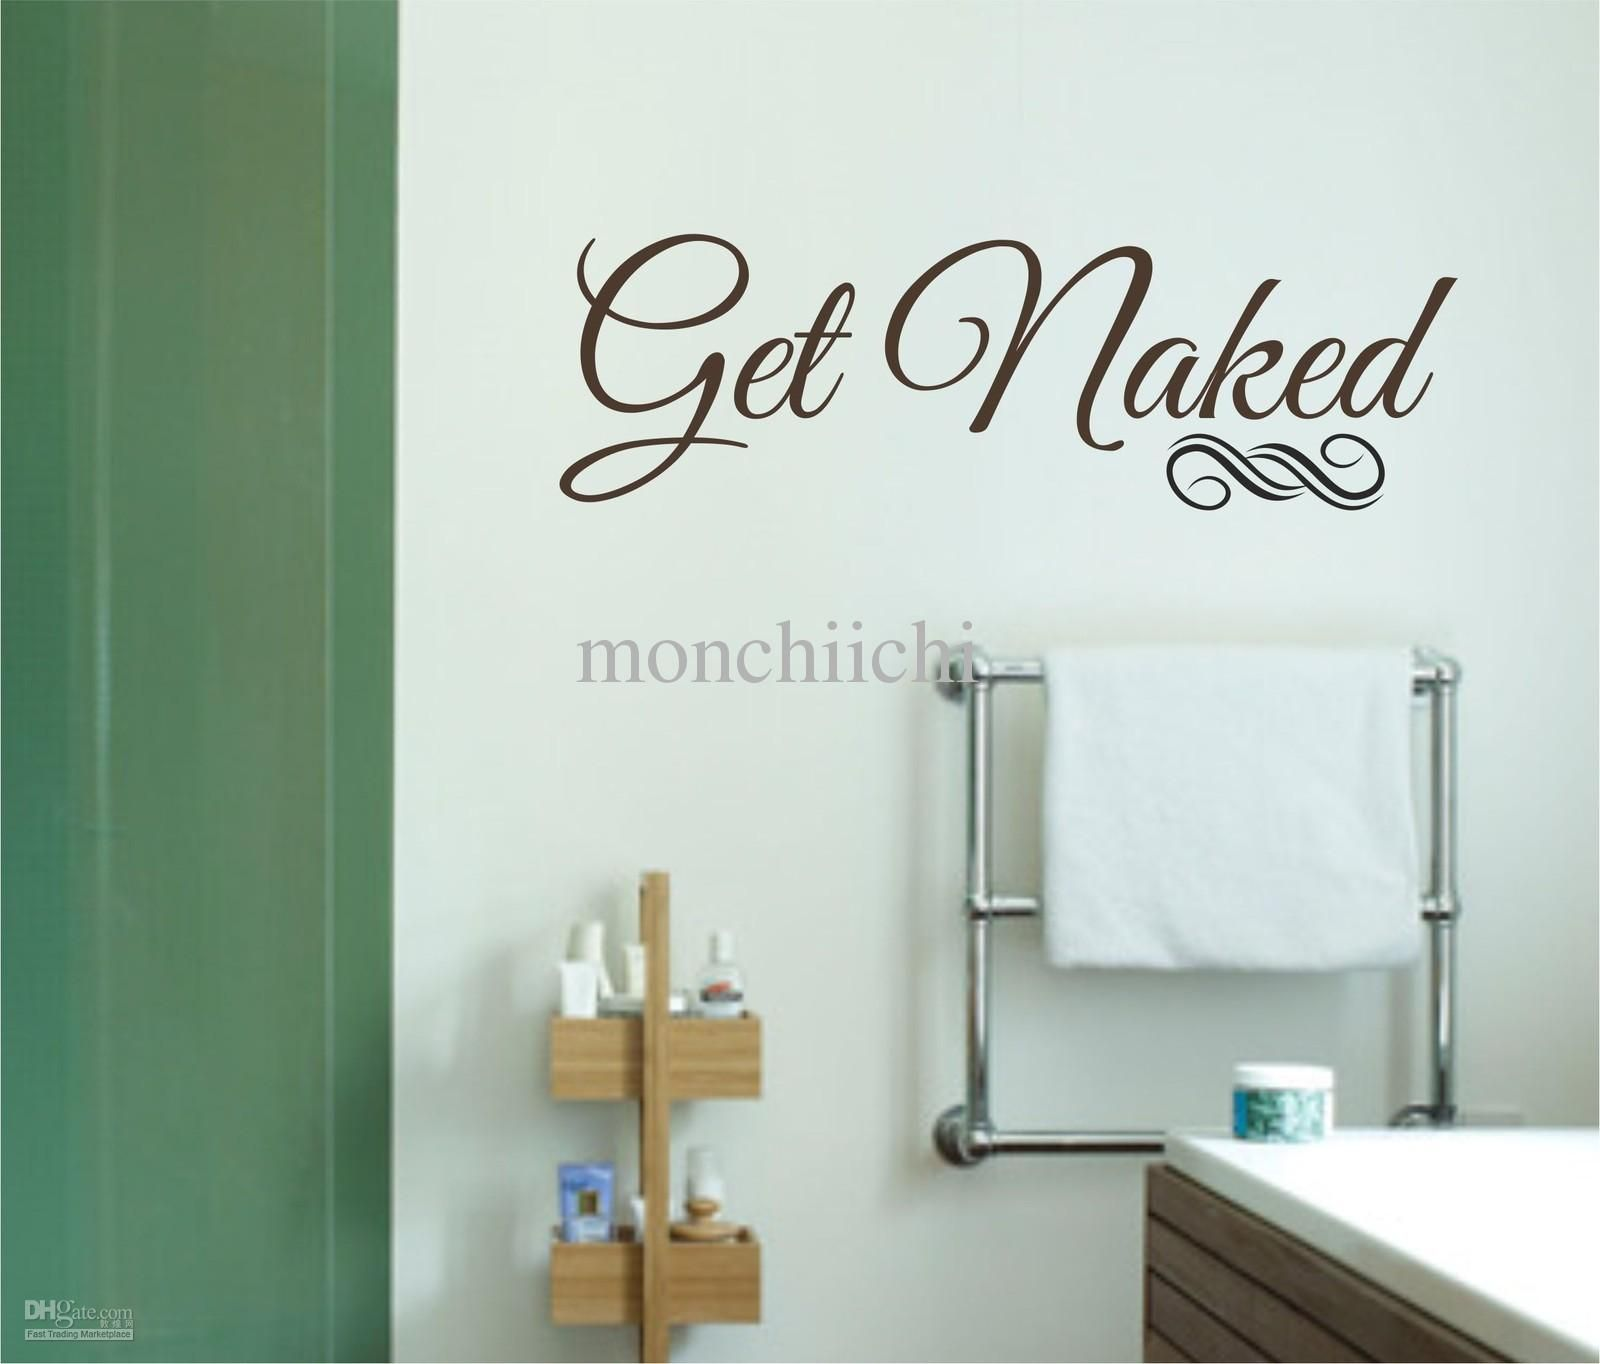 Wall Art For Bathrooms bathroom wall art ideas decor | ideas | pinterest | bathroom wall